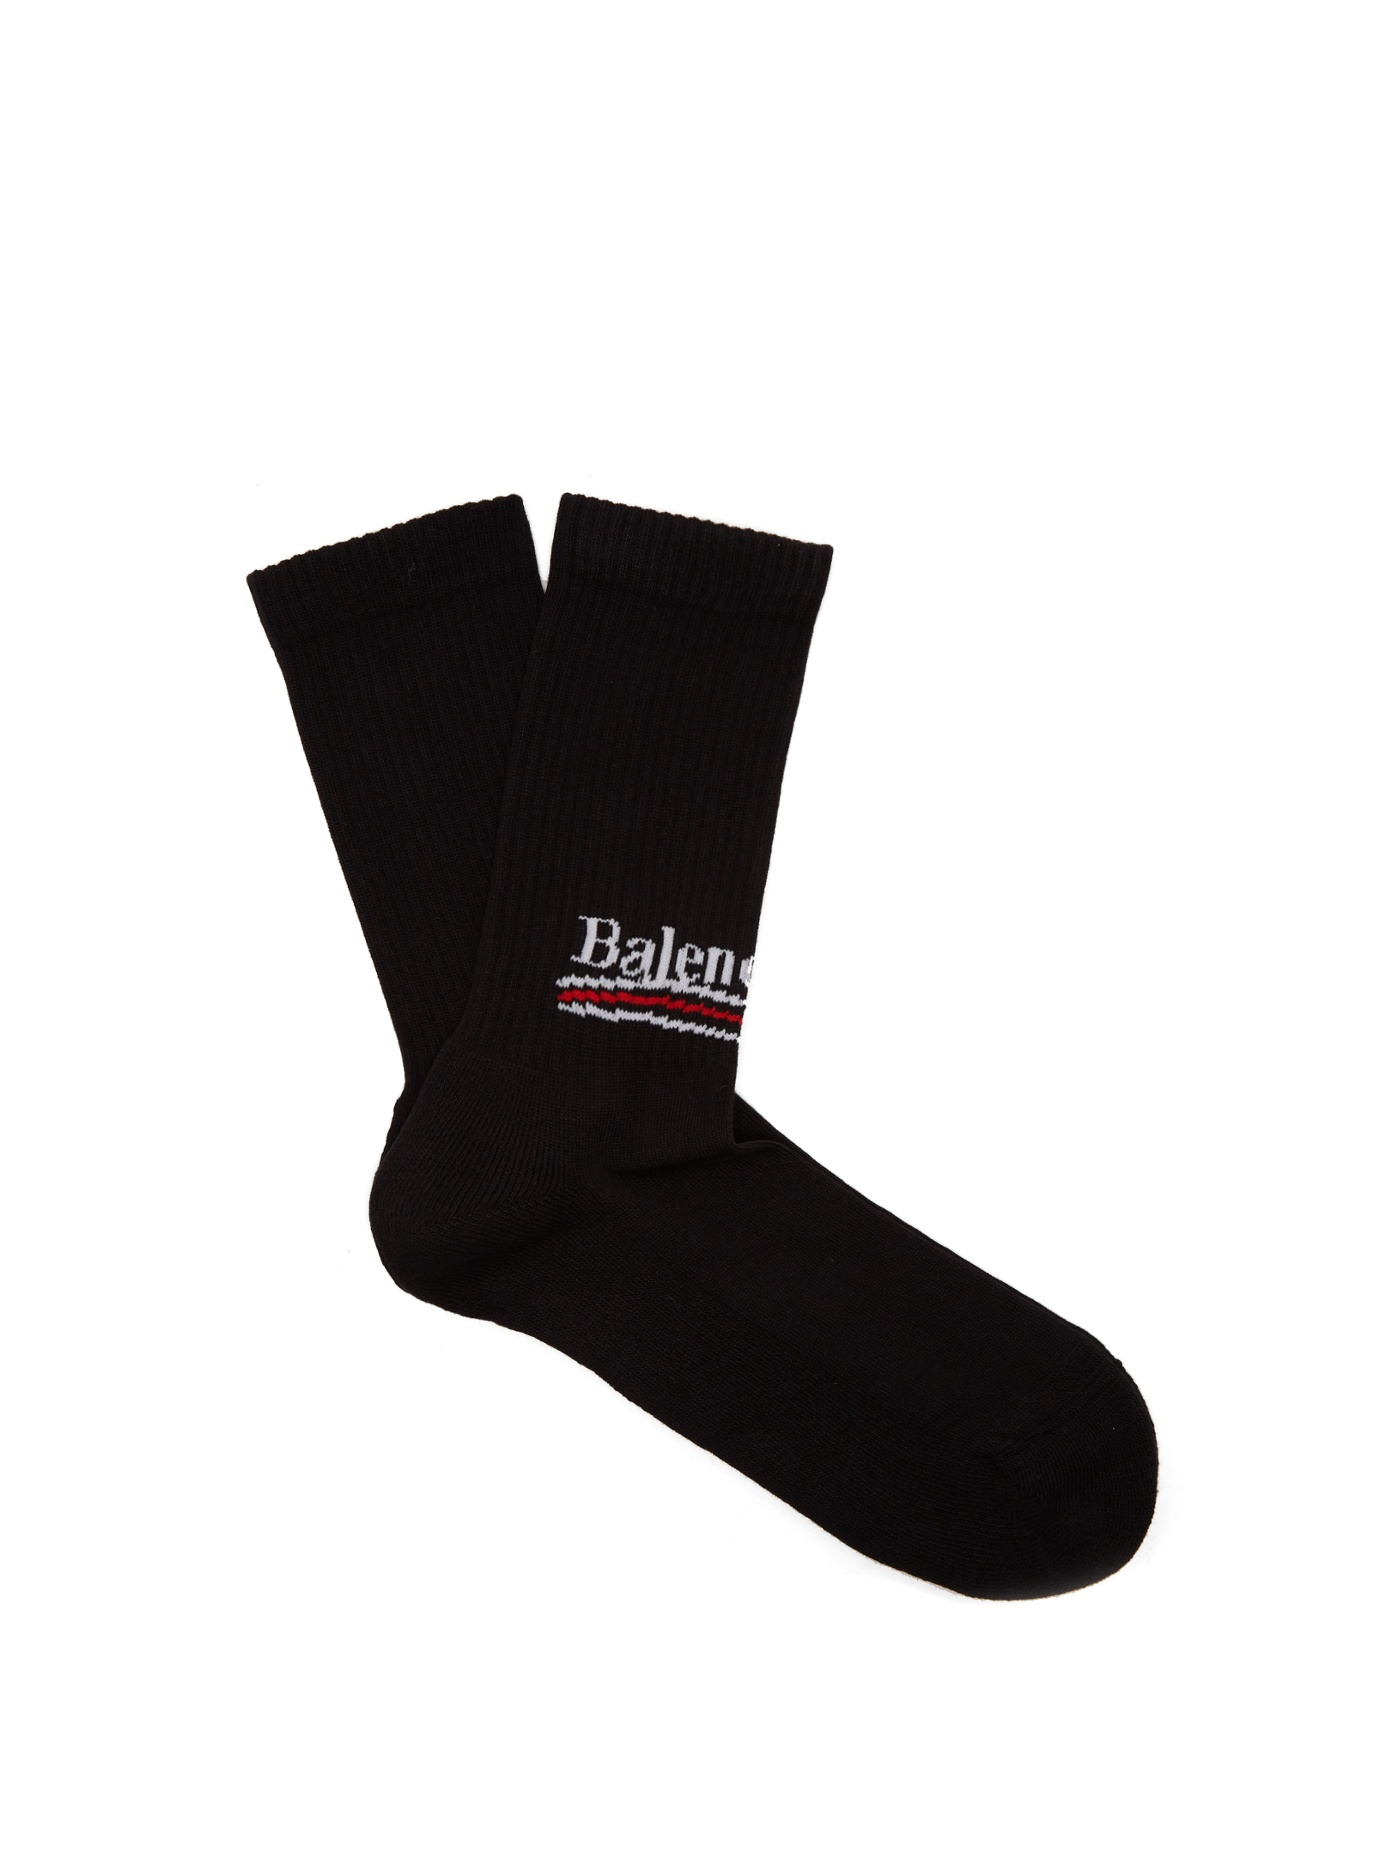 Balenciaga Socks Drop at Matches Fashion